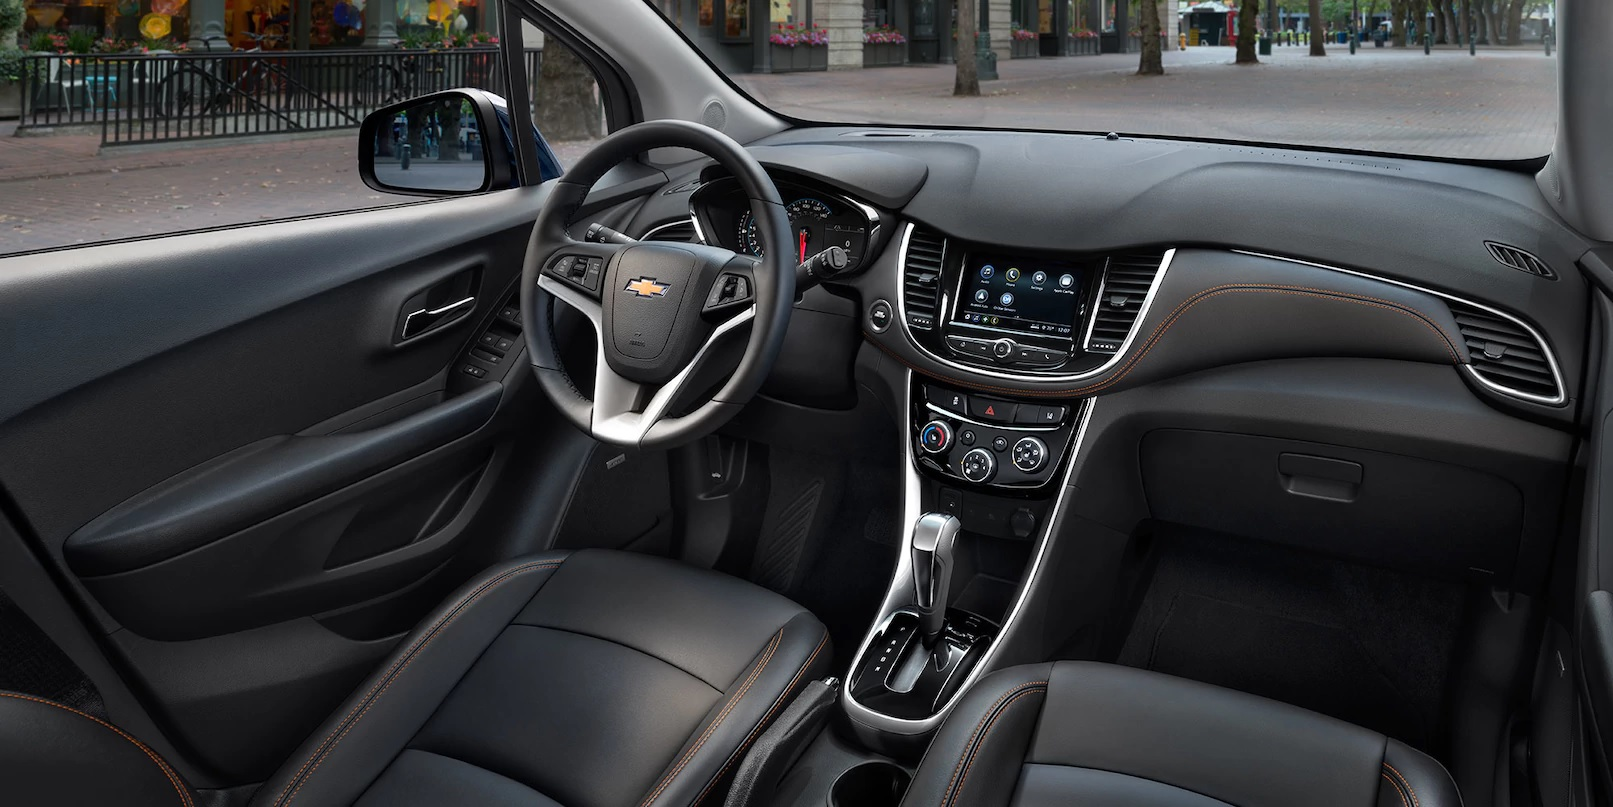 2018 Chevrolet Trax Financing in Chicago, IL - Kingdom Chevy